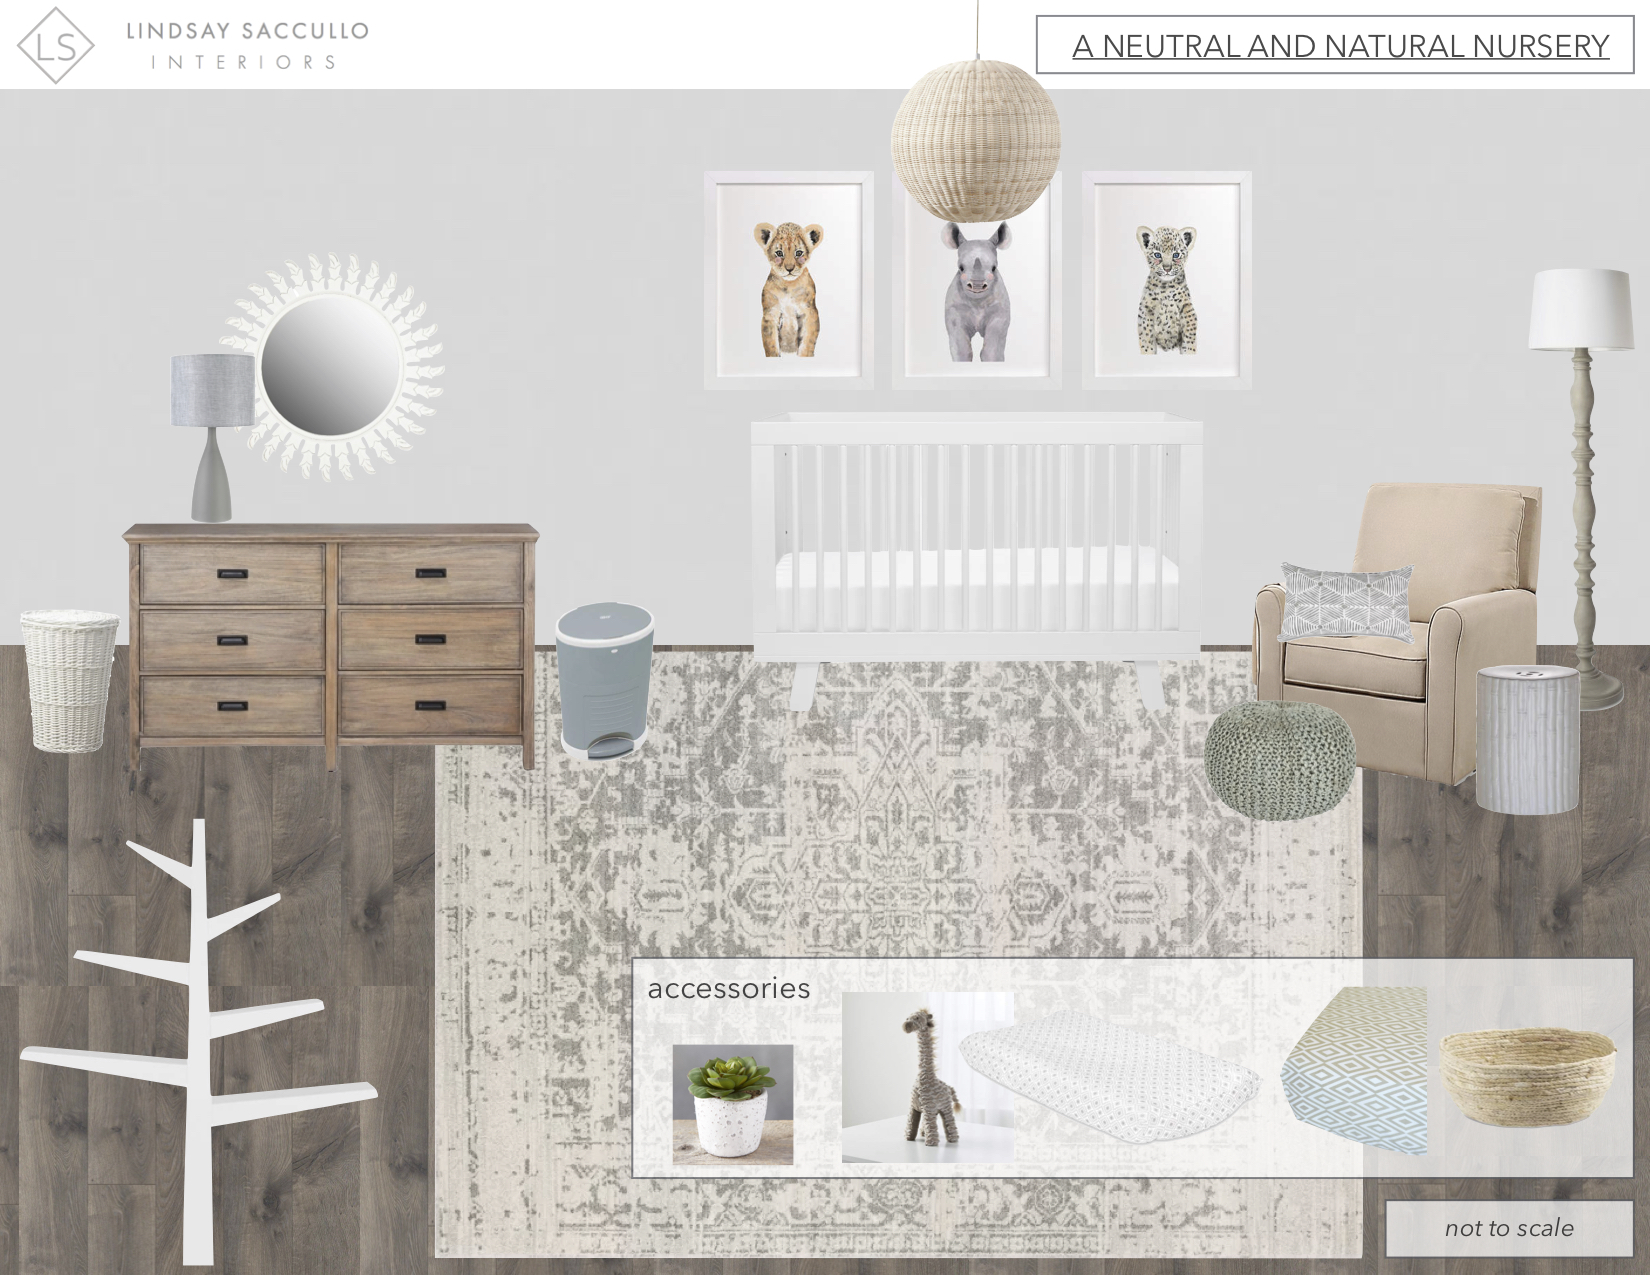 NEUTRAL NURSERY PACKAGE.jpg